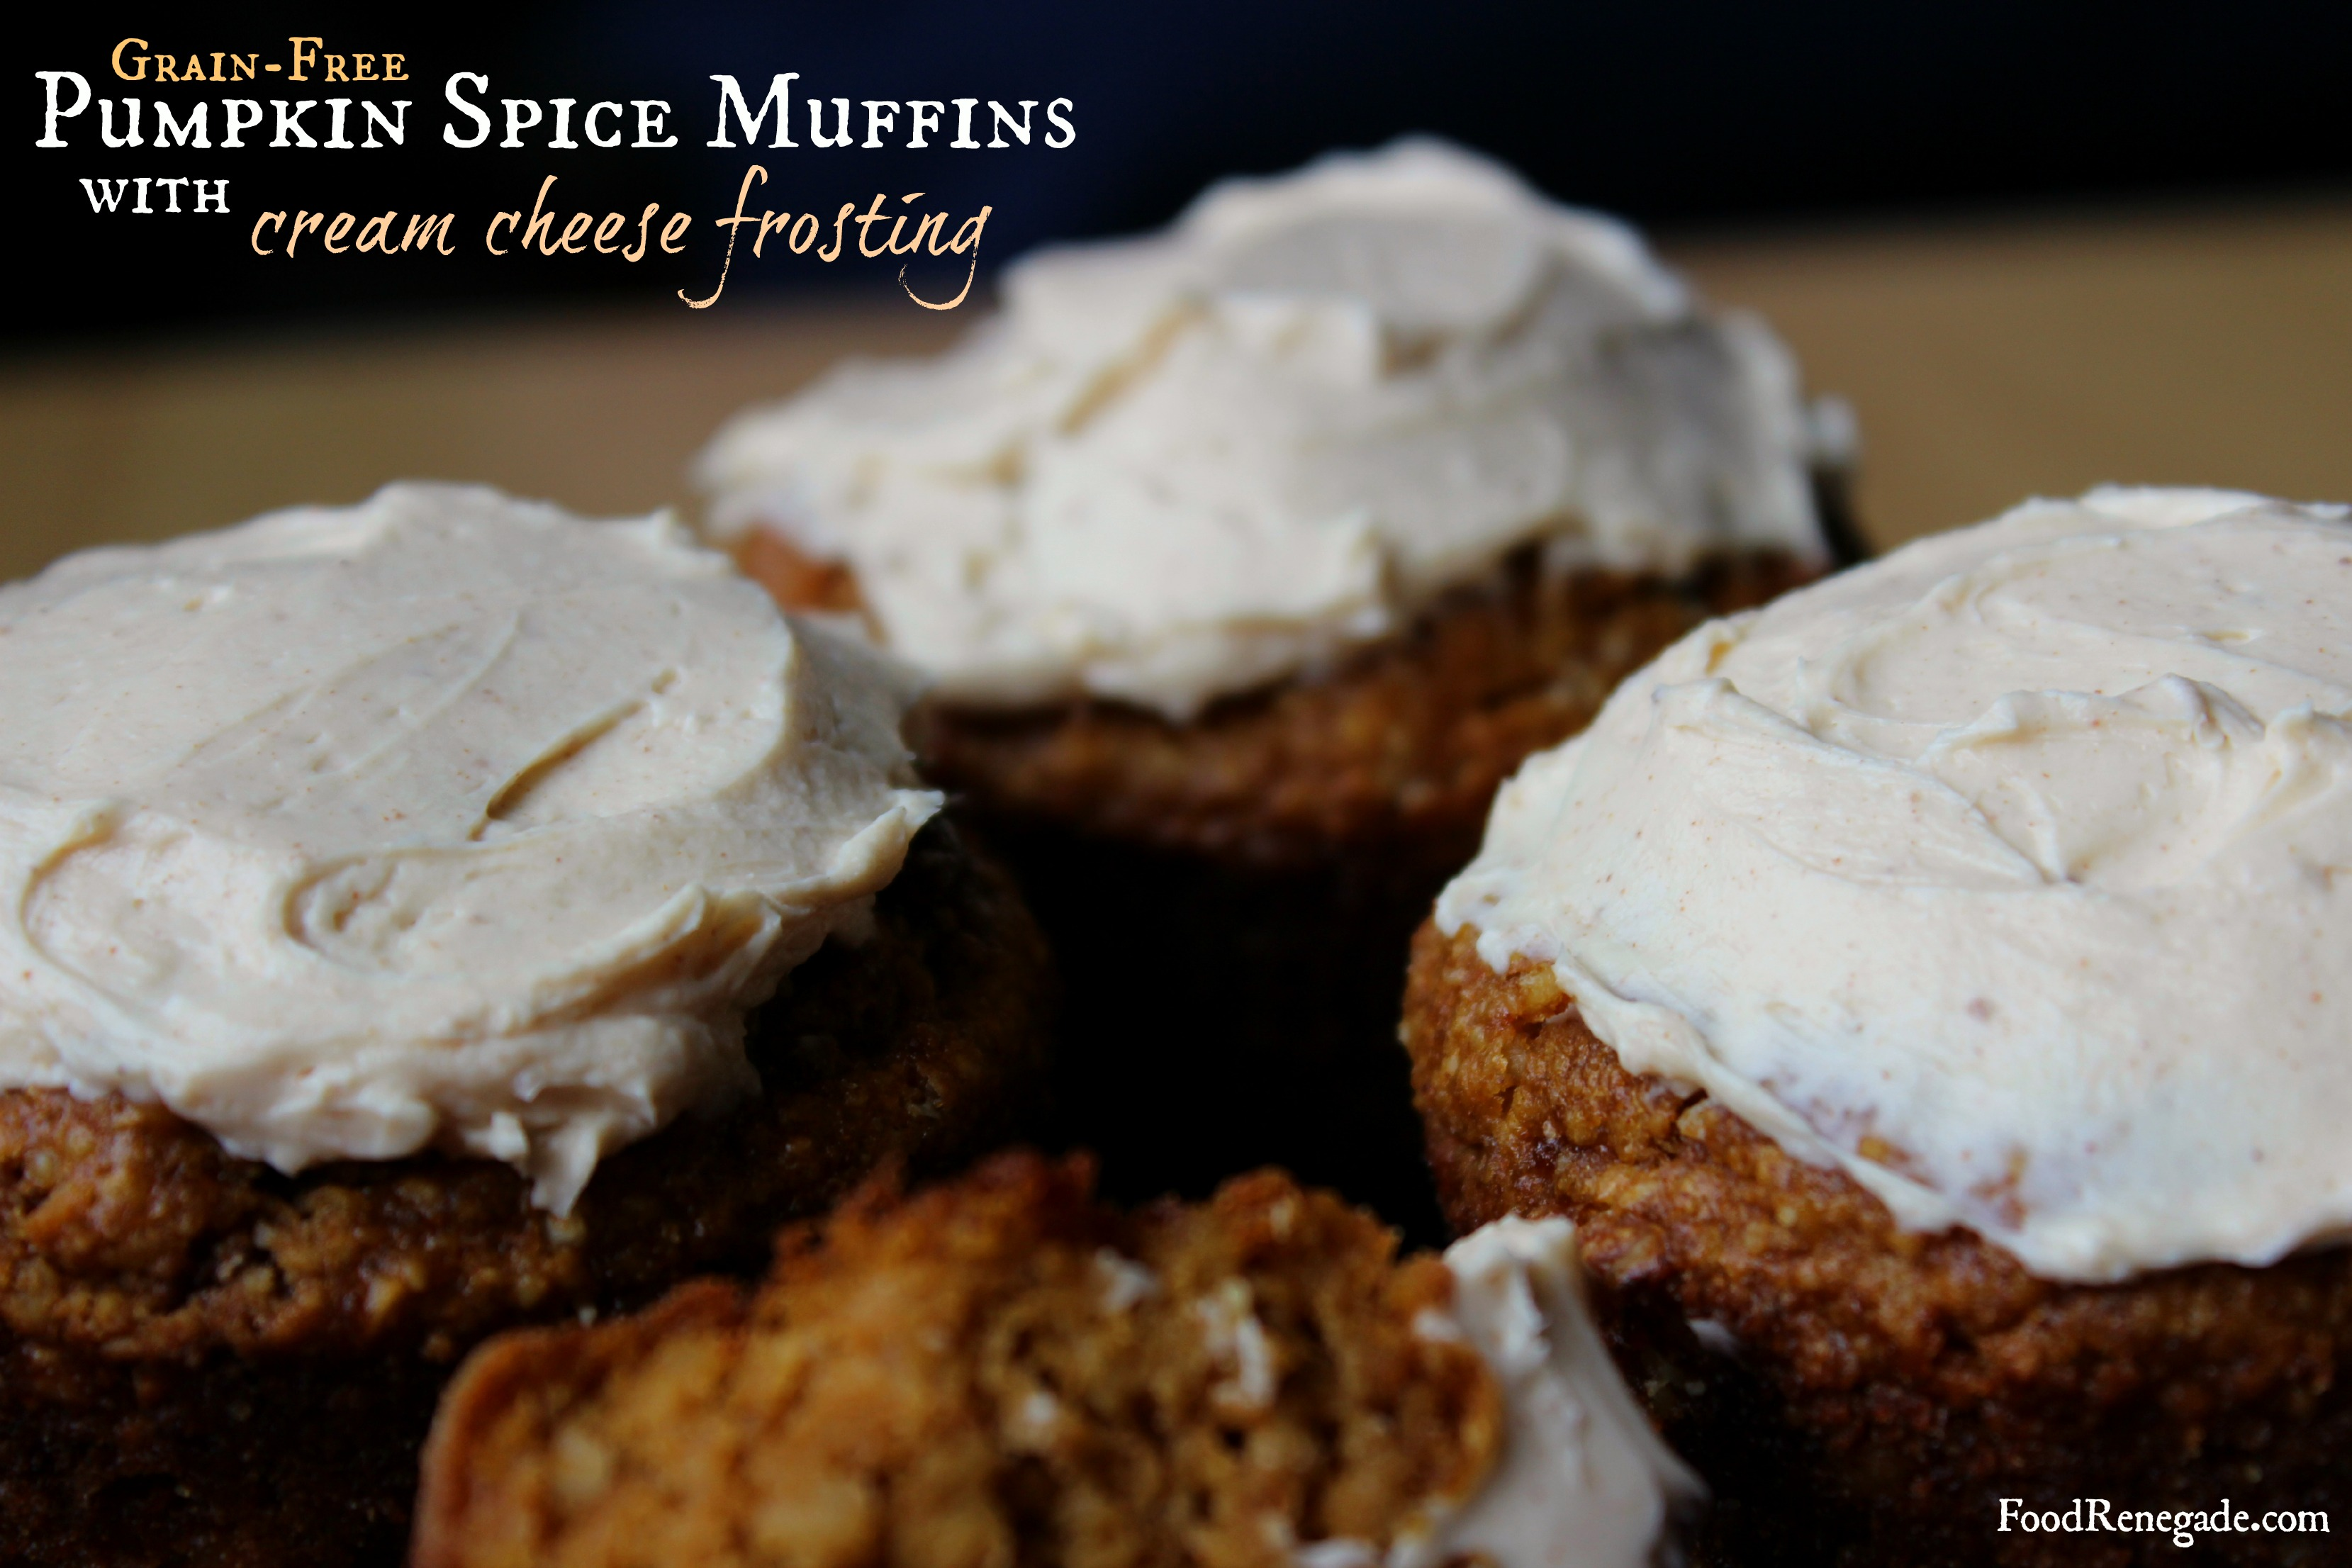 Grain-Free Pumpkin Spice Muffins with Cream Cheese Frosting | Food ...